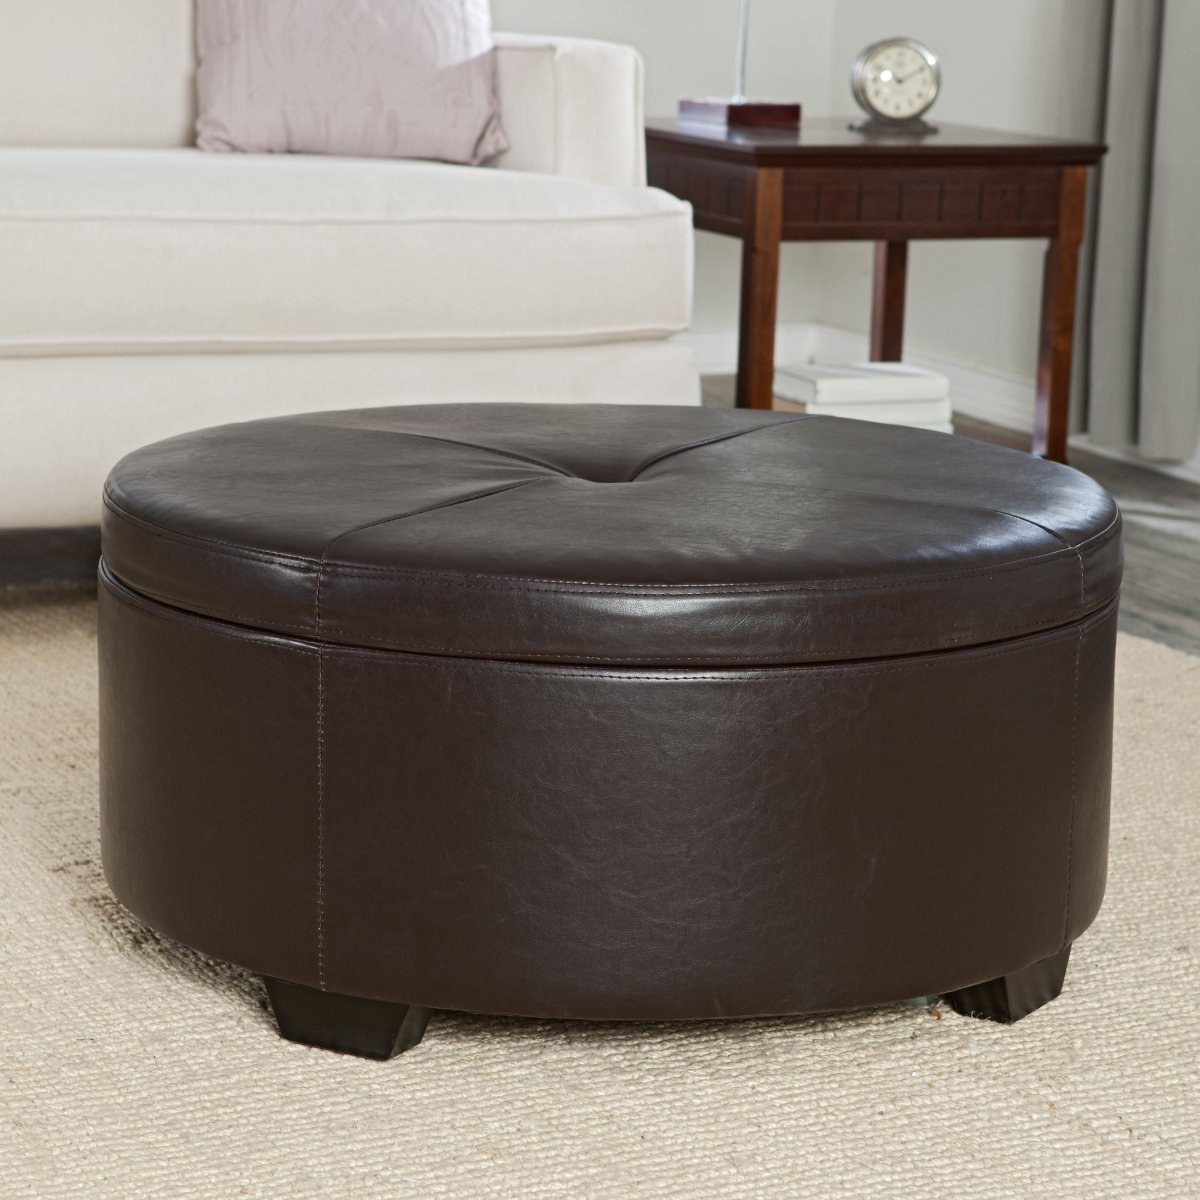 Leather Ottoman Coffee Table Elegant Leather Ottoman Coffee Table Dark Brown Leather (View 4 of 10)